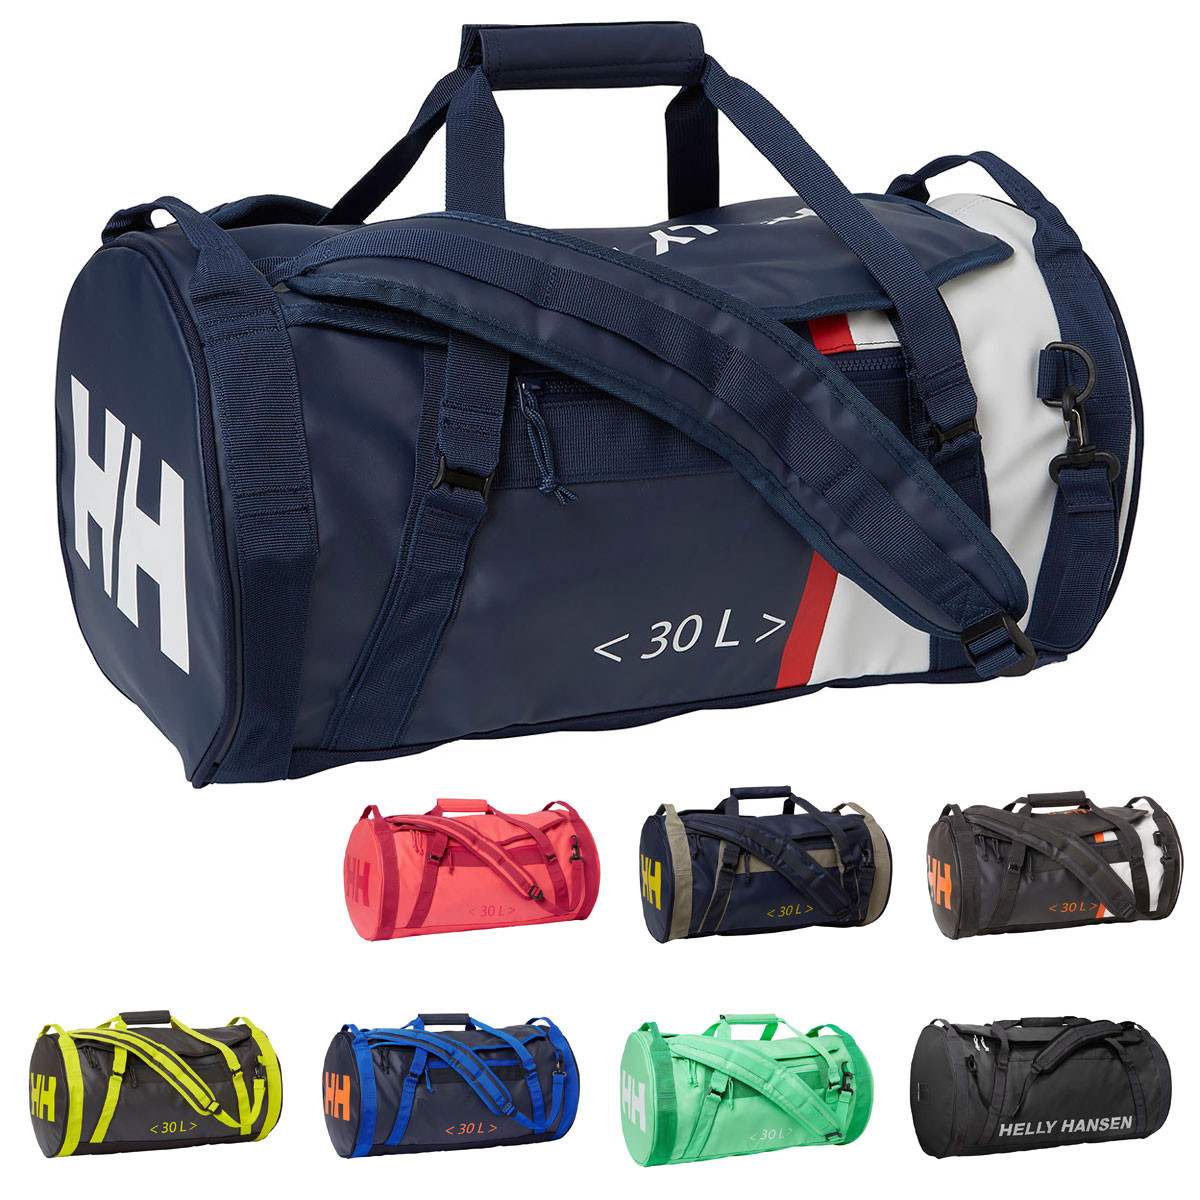 e5572dd26c SHARE THIS ITEM WITH YOUR FRIENDS. Watch video Size Guide. Description;  Technology; Reviews0. Description. The Helly Hansen HH Duffel Bag 2 30L  Holdall ...